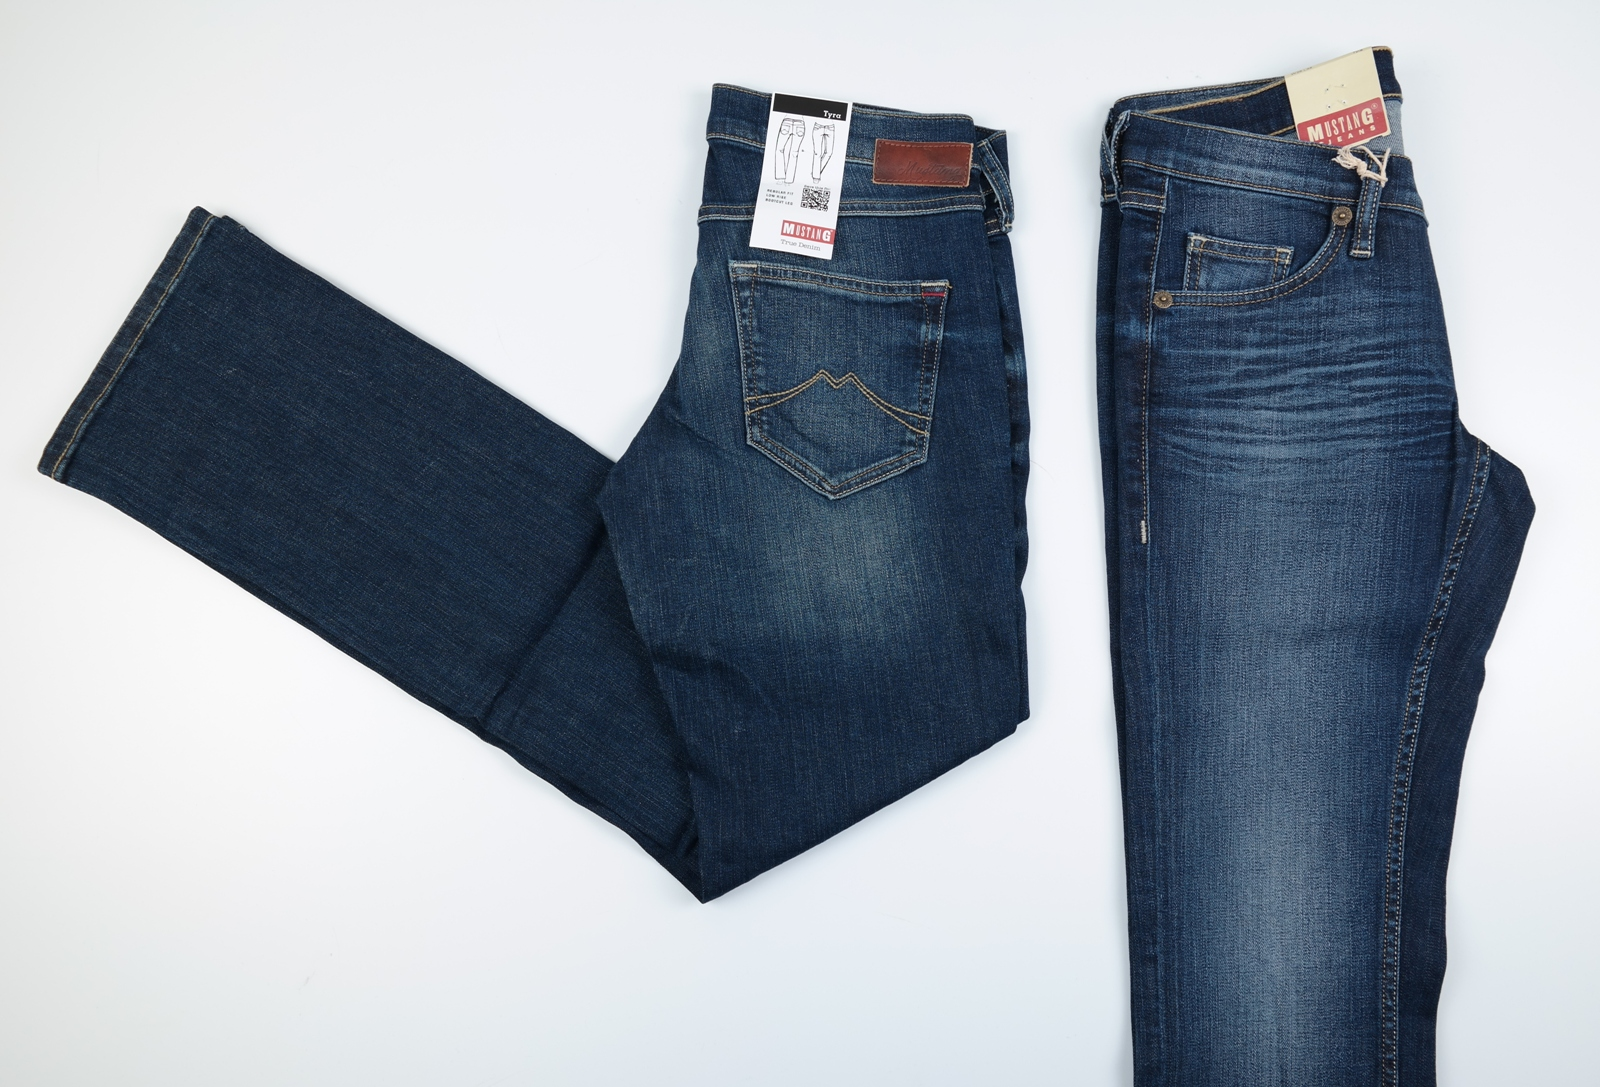 mustang tyra bootcut damen jeans w26 to w33 l30 32 34 wow ebay. Black Bedroom Furniture Sets. Home Design Ideas